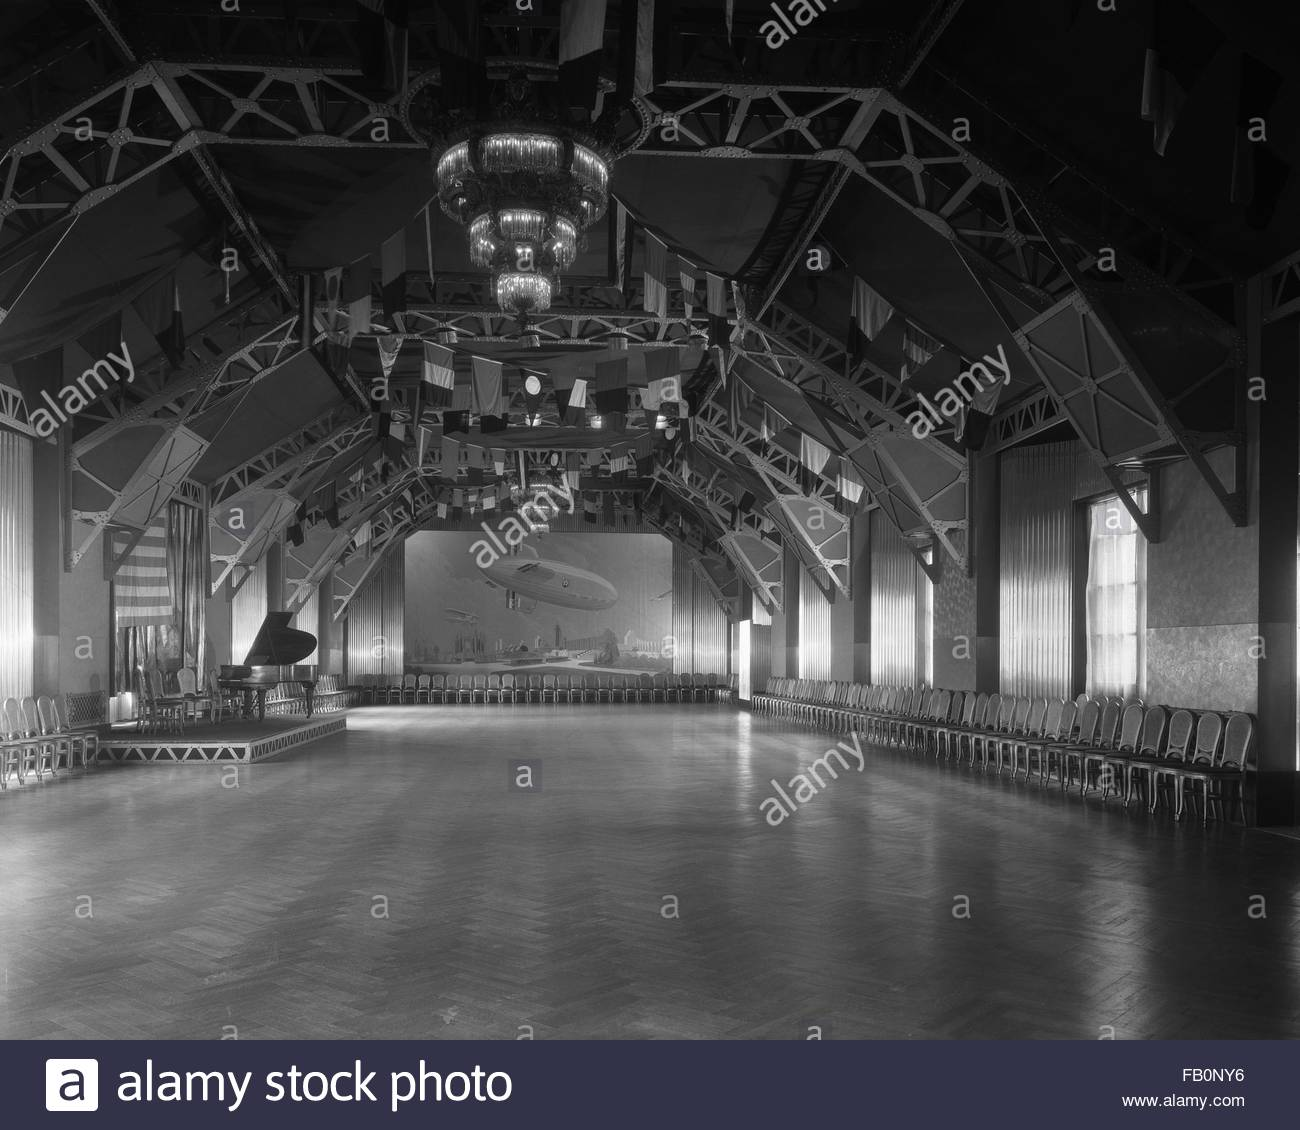 Ballroom at Hotel LaSalle in Chicago (Ill.), 1933. The Hangar, the attic ballroom in Hotel LaSalle, located at LaSalle Stock Photo